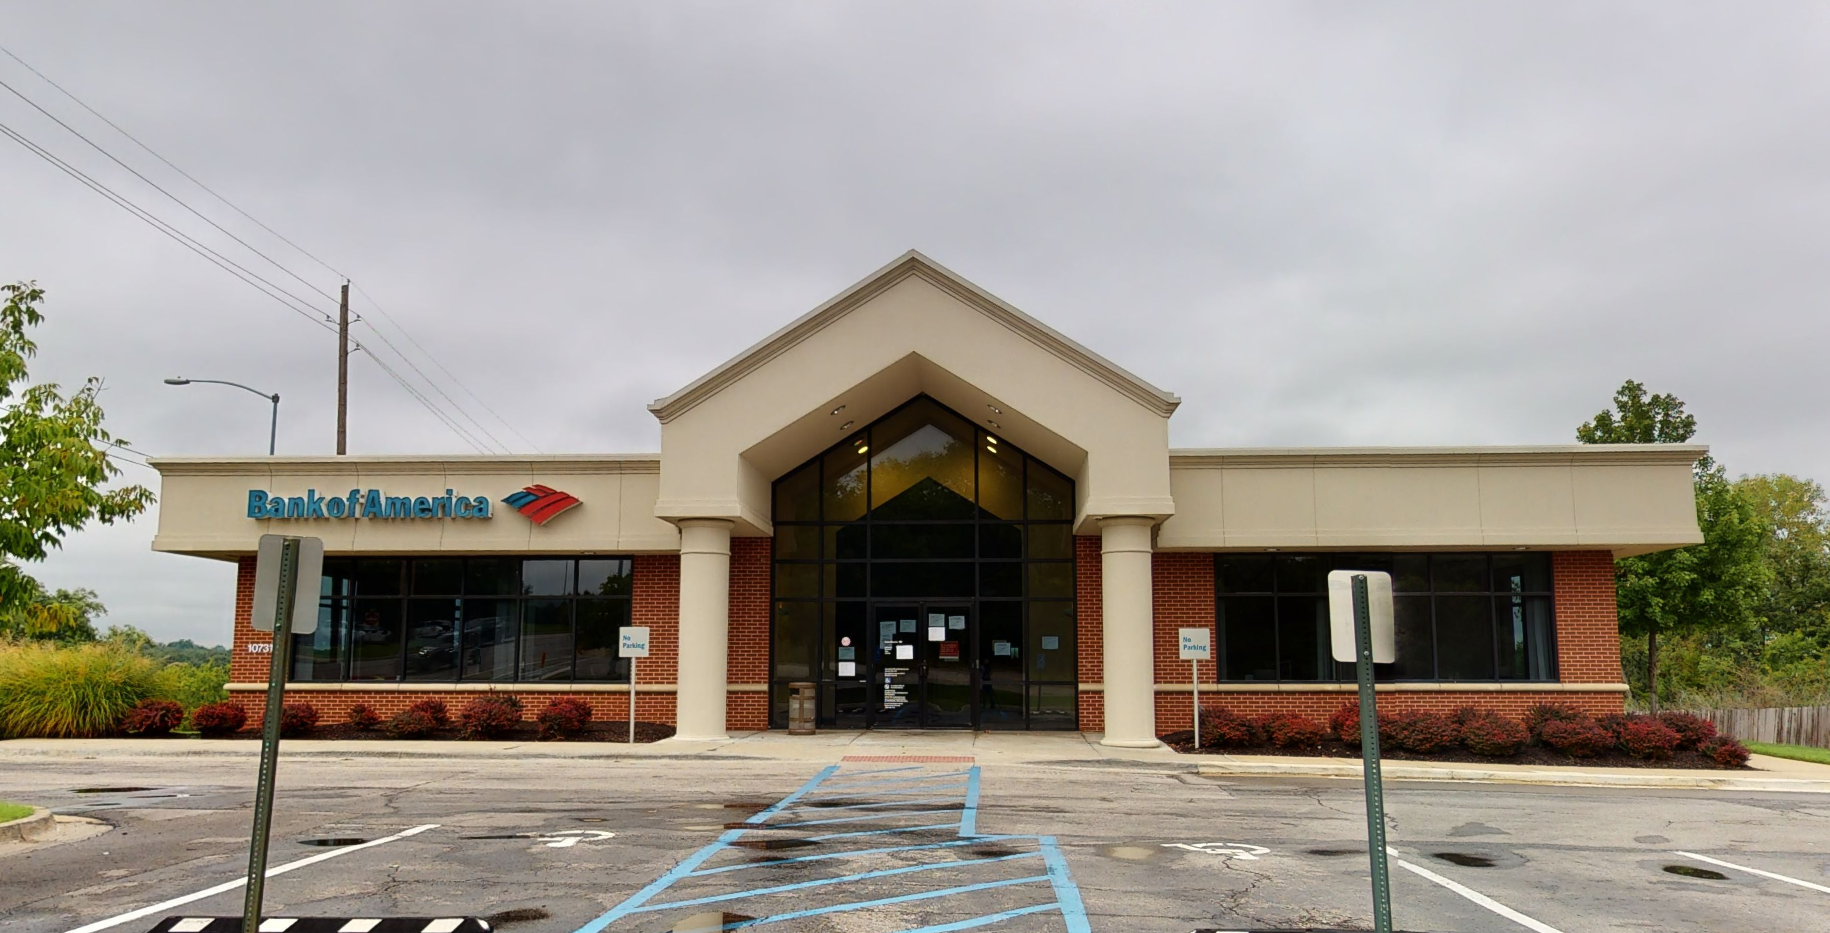 Bank of America financial center with drive-thru ATM   10731 State Line Rd, Kansas City, MO 64114